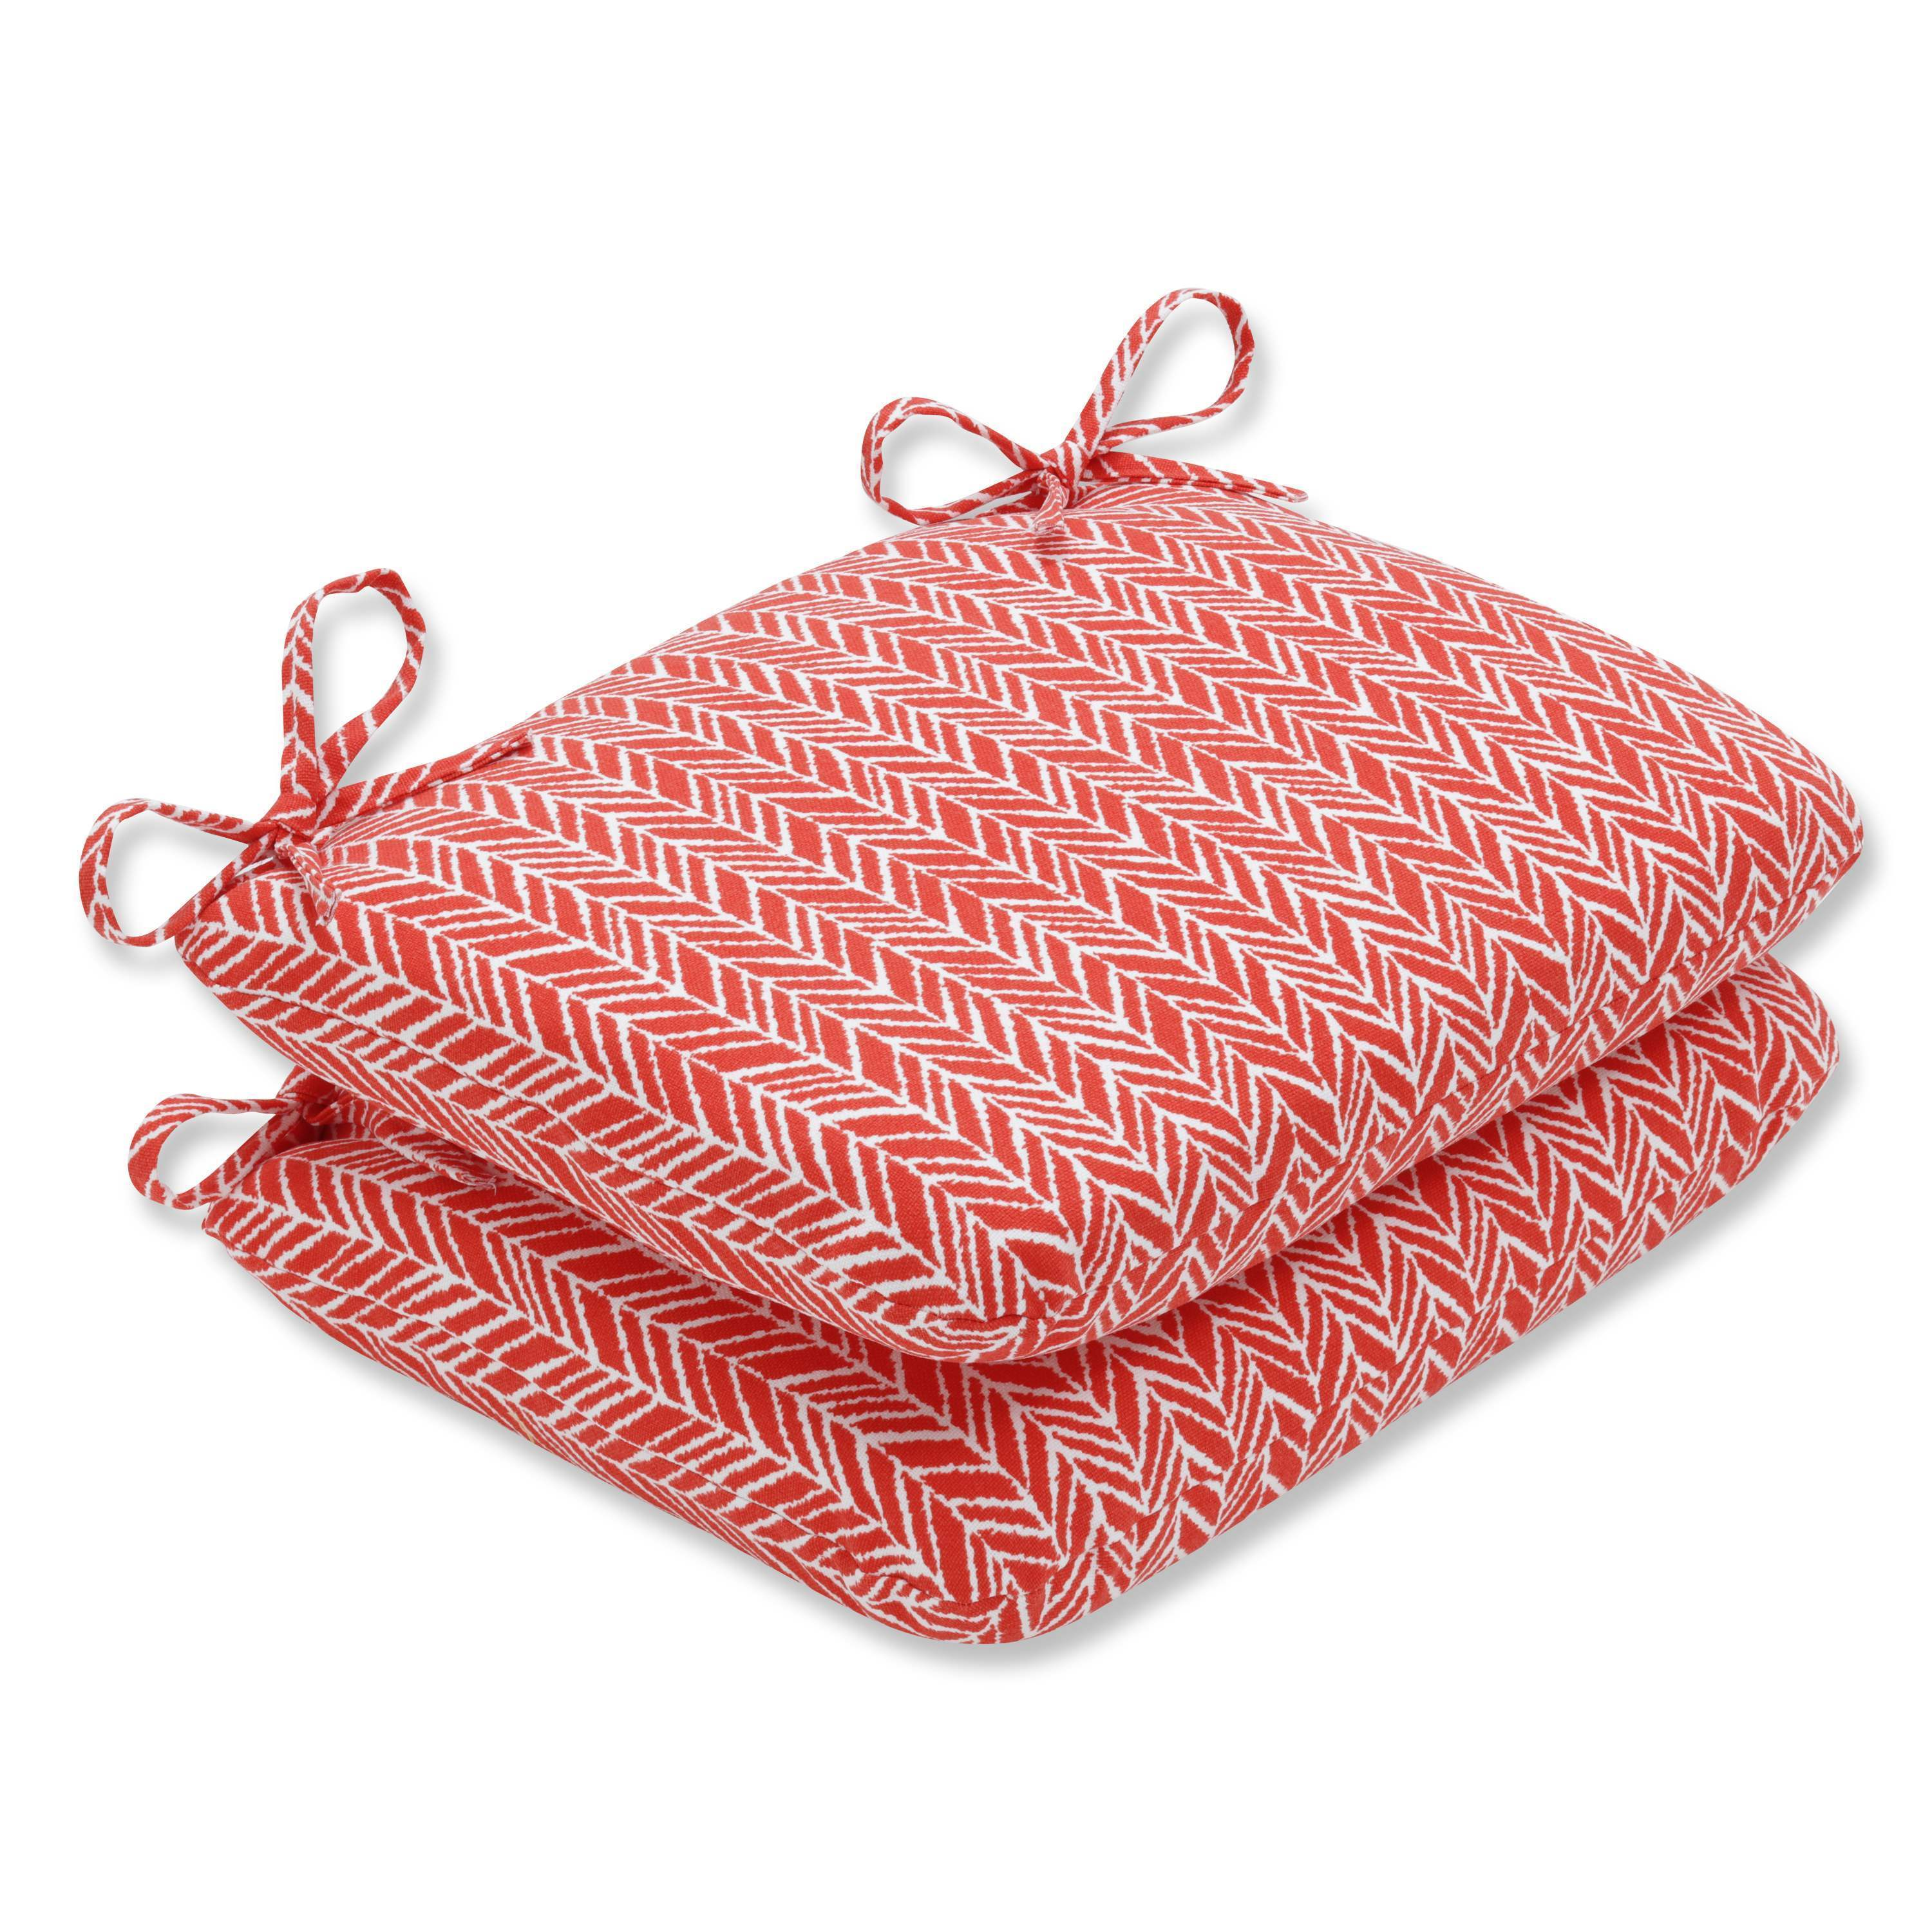 Pillow Perfect Outdoor/ Indoor Herringbone Tomato Rounded Corners Seat Cushion (Set of 2) (Rounded Corners Seat Cushion (Set of 2))